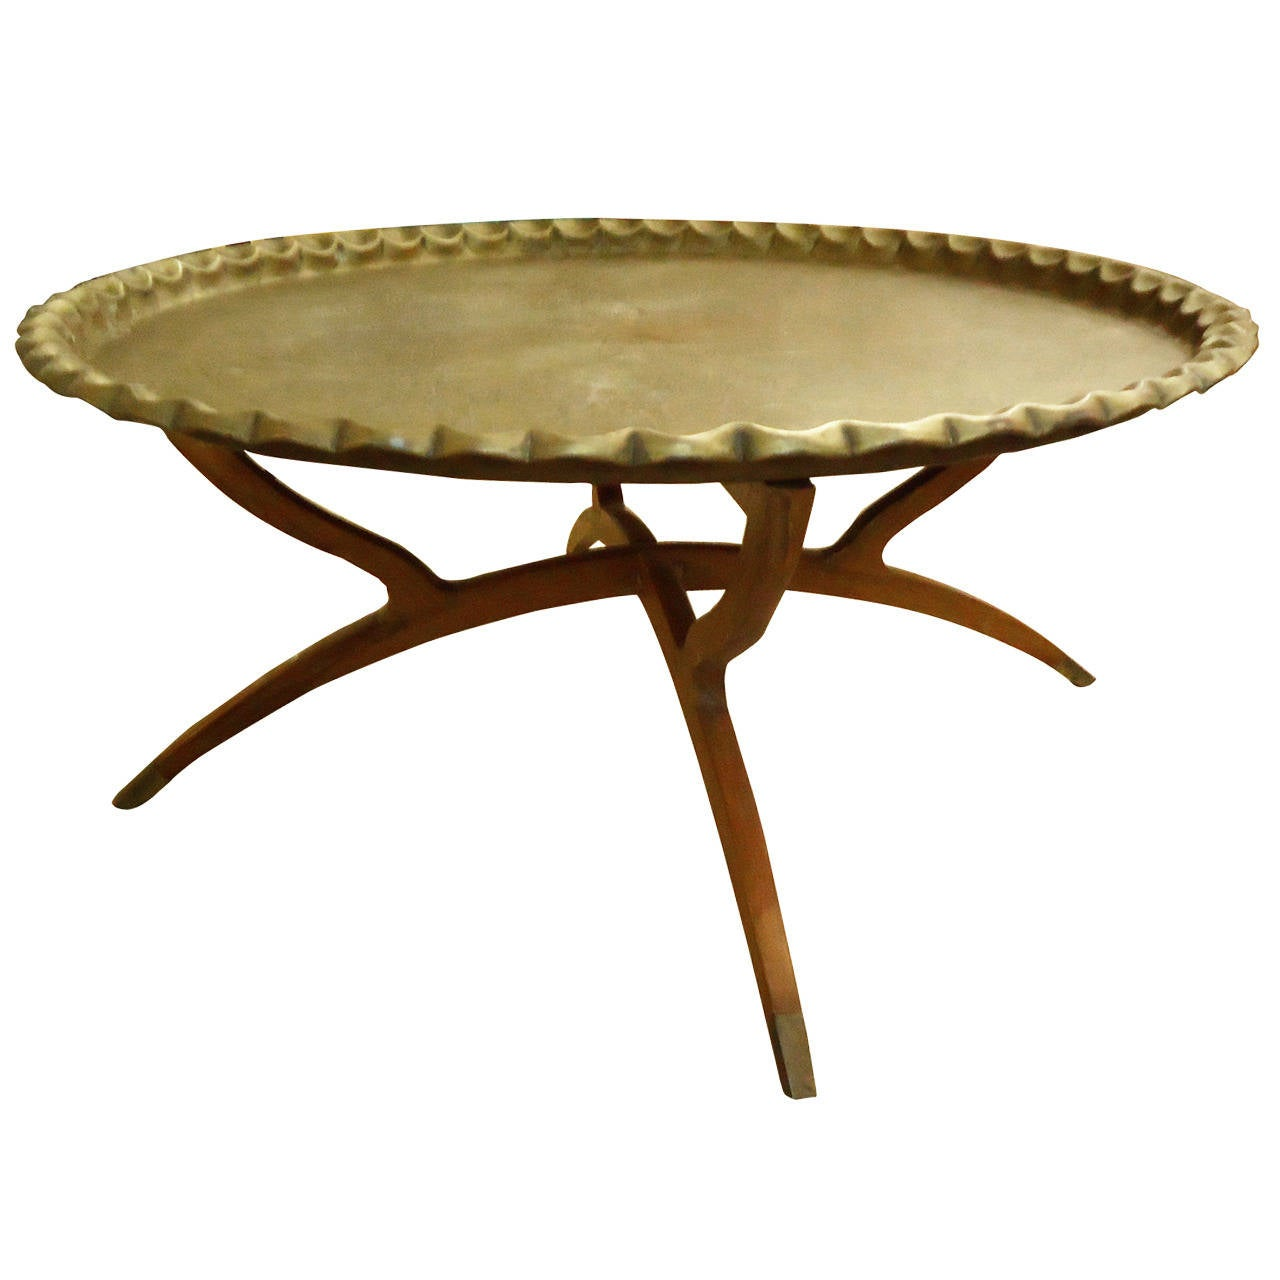 Coffee Table Tray Contemporary: Etched Brass Tray Top Coffee Table With Danish Modern Base